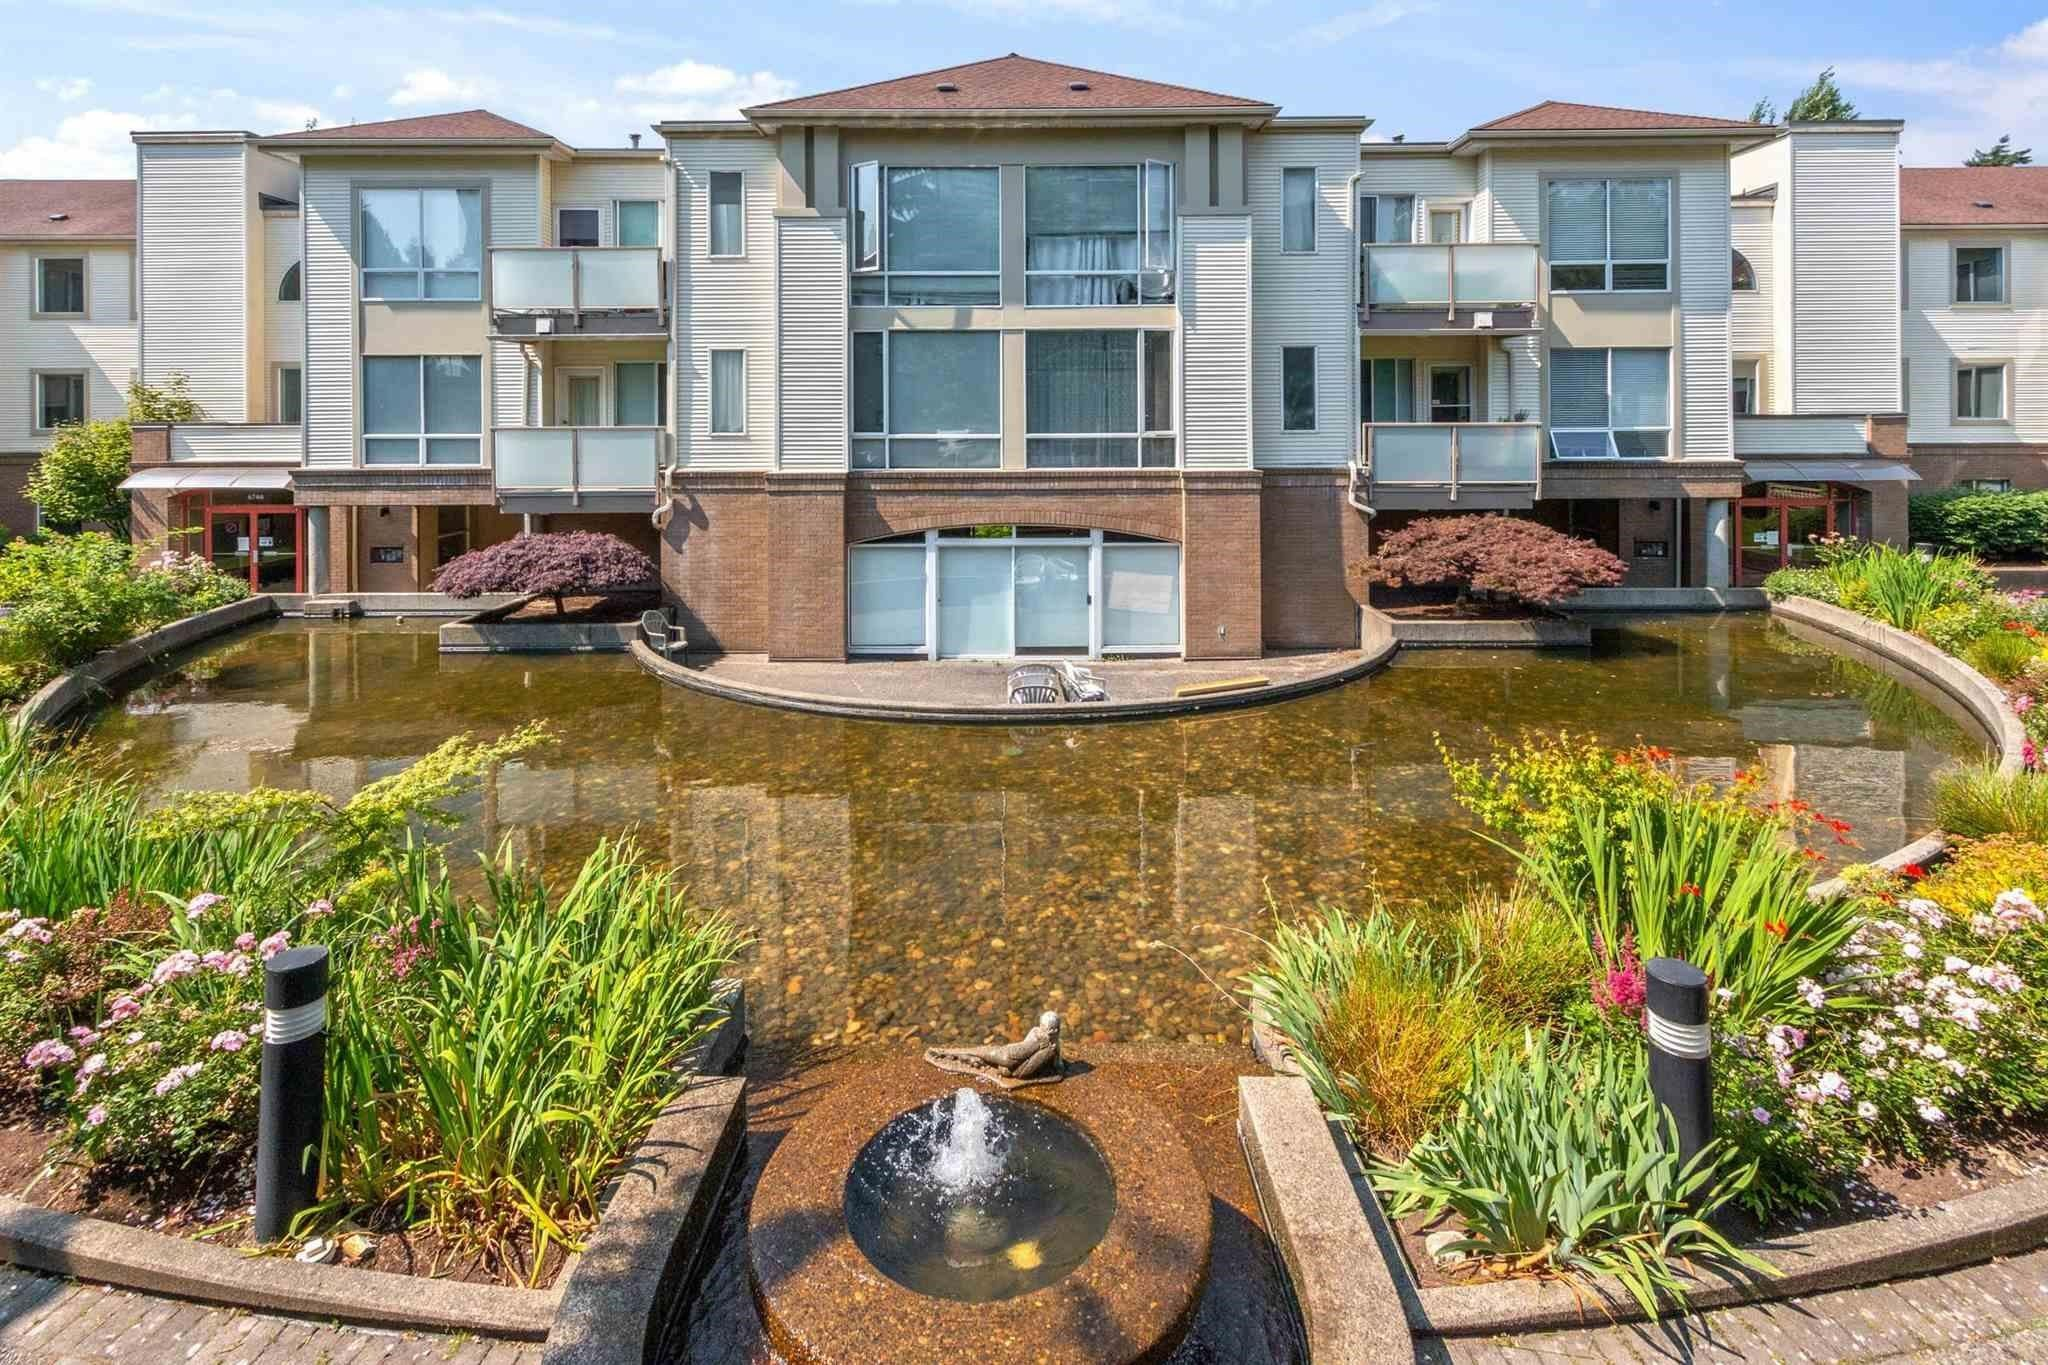 """Main Photo: 304 6742 STATION HILL Court in Burnaby: South Slope Condo for sale in """"WYNDHAM COURT"""" (Burnaby South)  : MLS®# R2621725"""